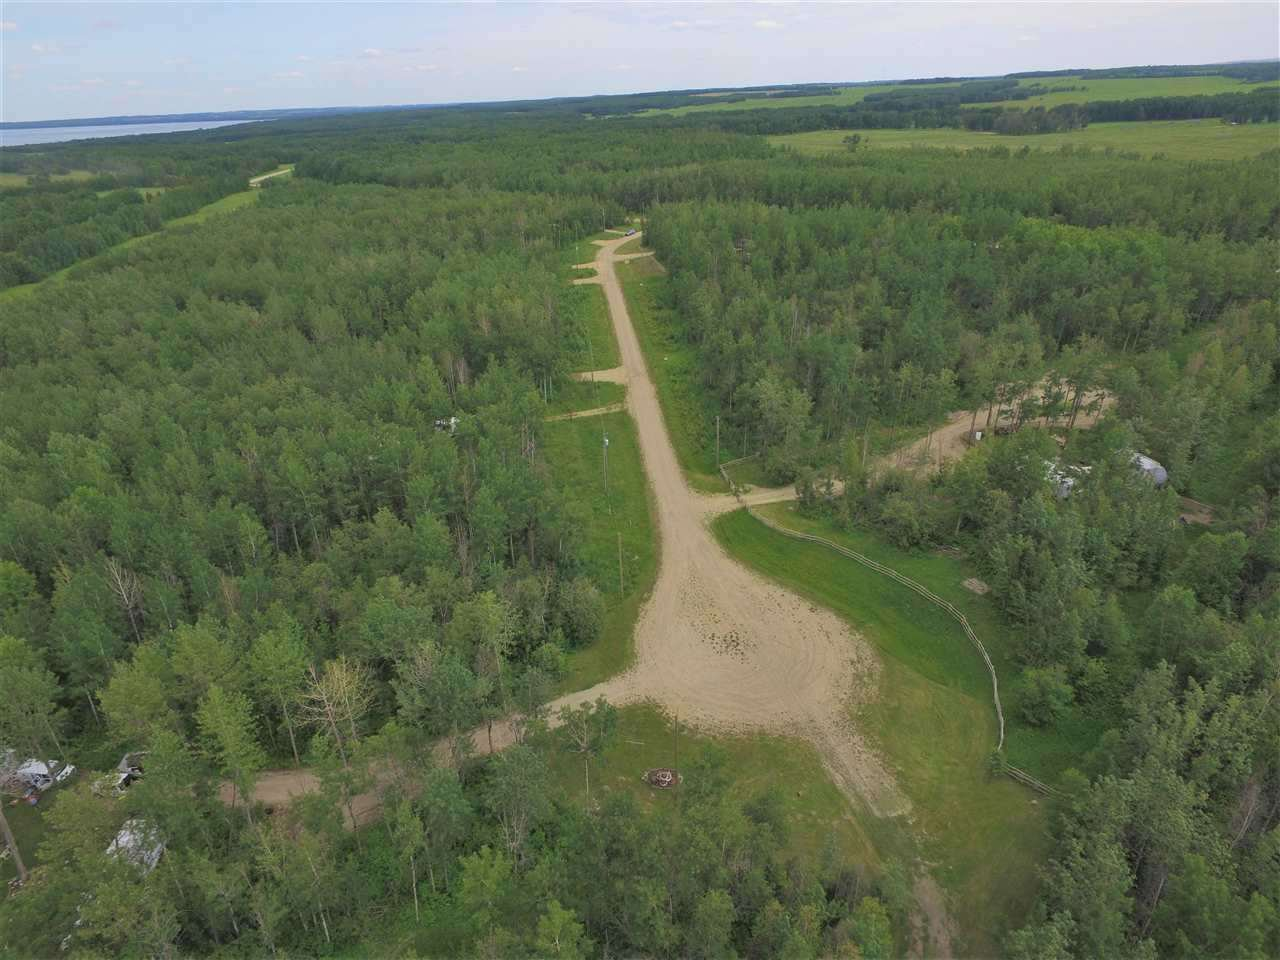 Photo 3: Photos: 11 13070 TWP RD 464: Rural Wetaskiwin County Rural Land/Vacant Lot for sale : MLS®# E4169948